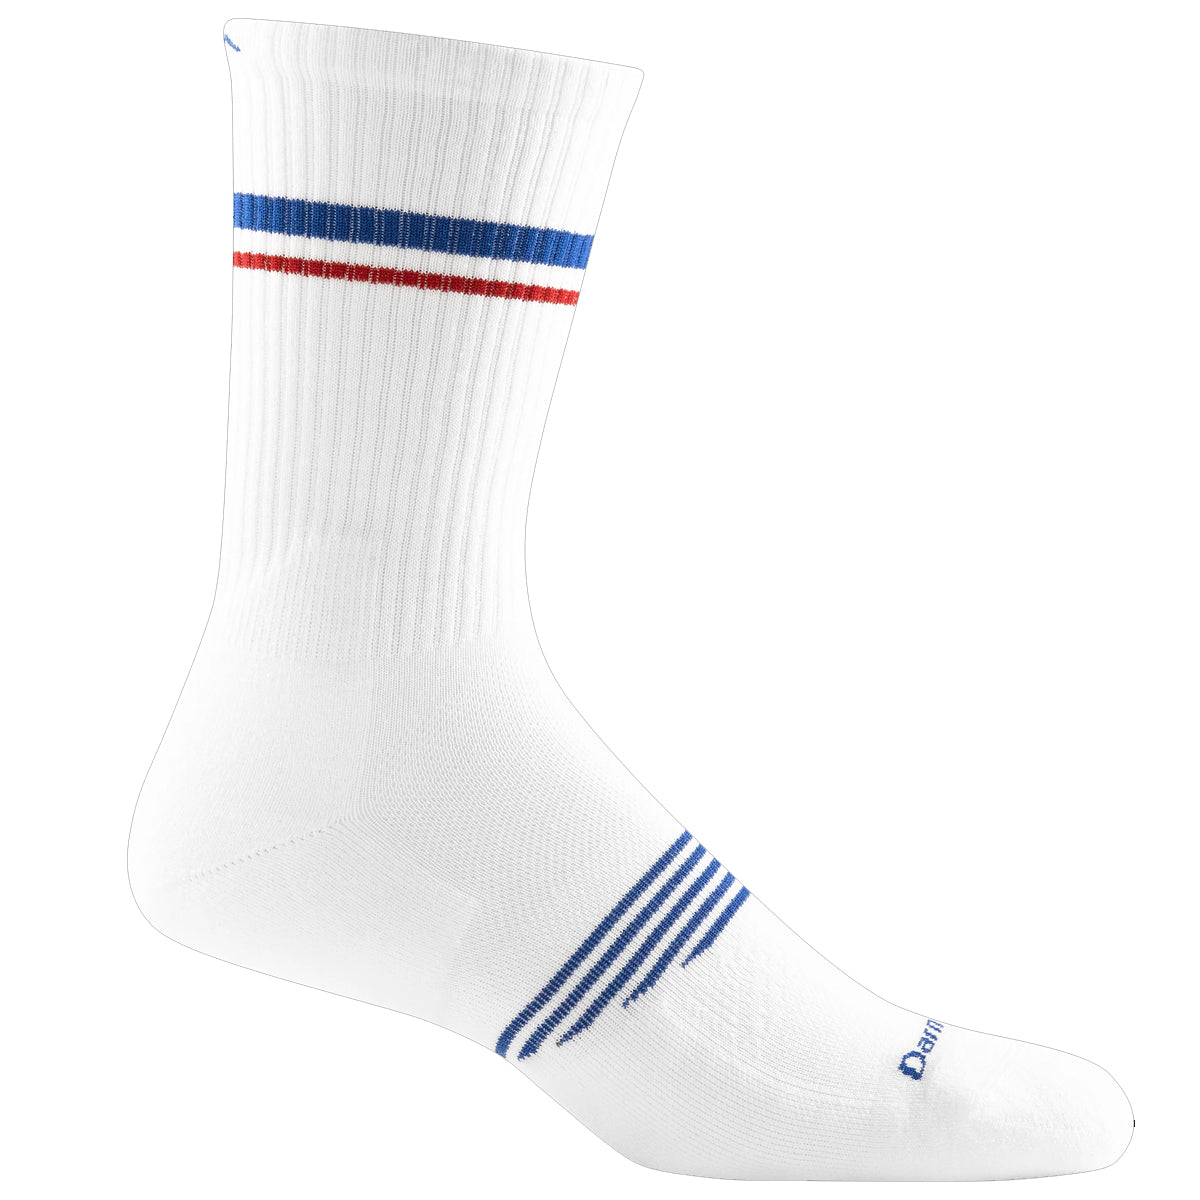 Darn Tough Men's Element Crew Lightweight Athletic Socks - White